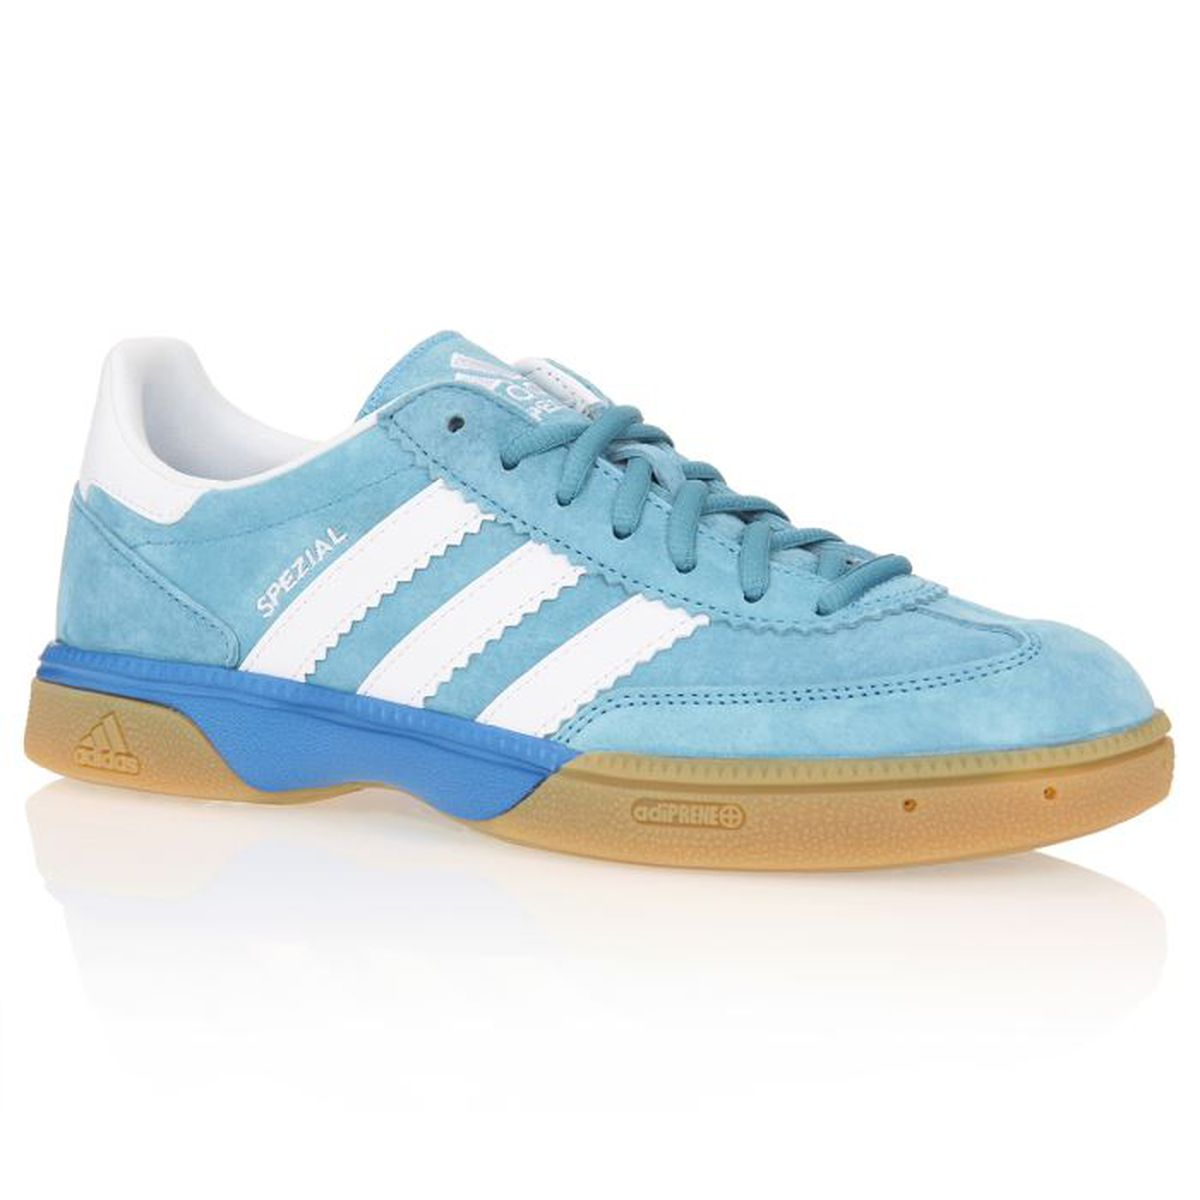 adidas chaussures handball spezial homme prix pas cher cdiscount. Black Bedroom Furniture Sets. Home Design Ideas